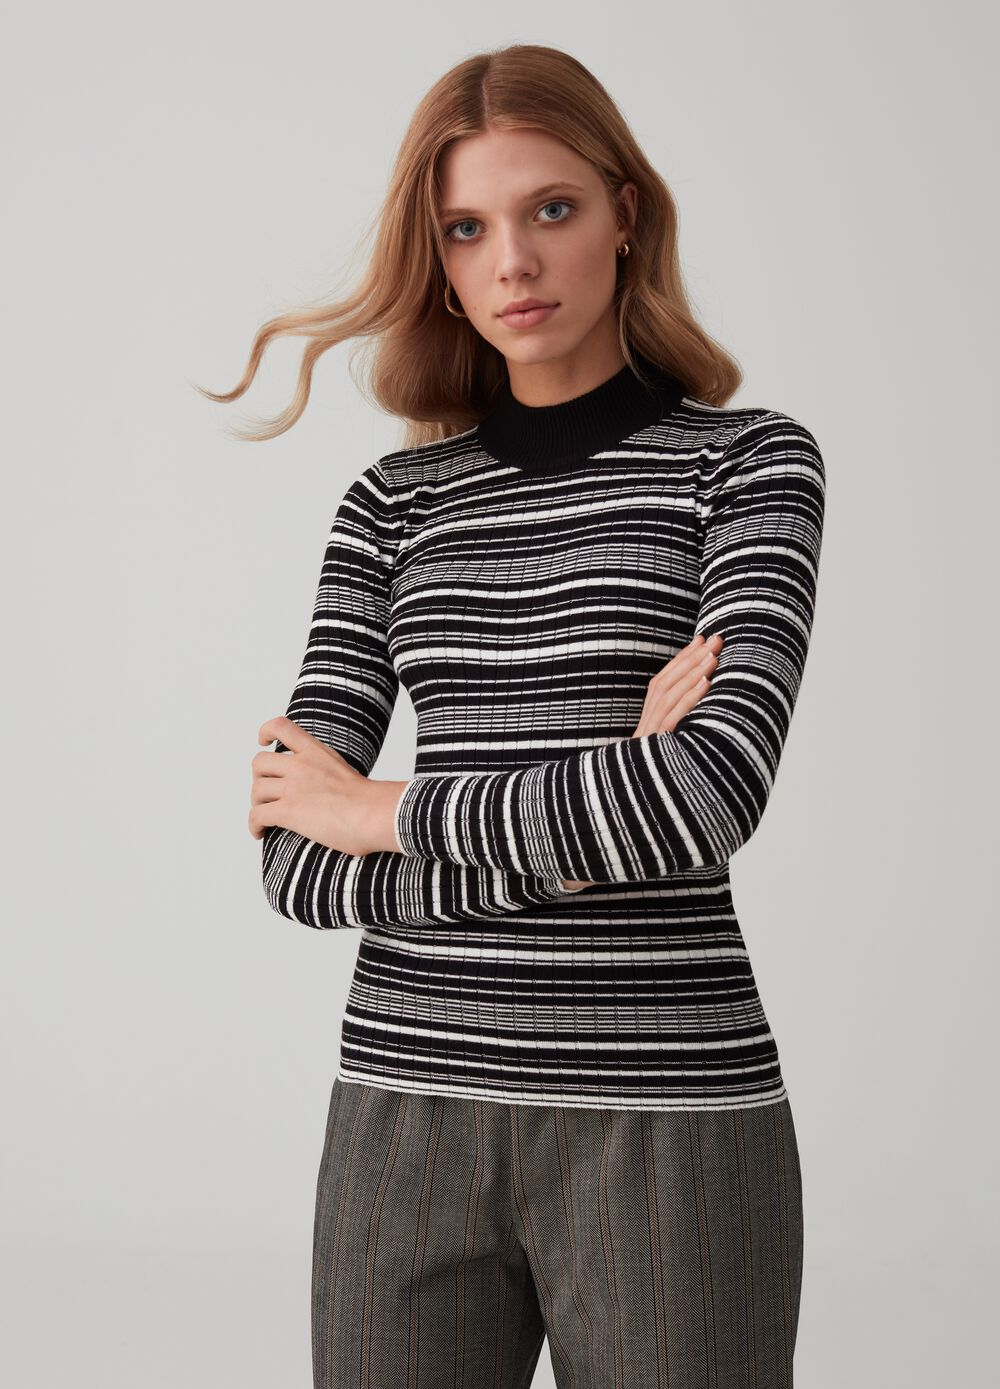 Viscose blend pullover with high neck